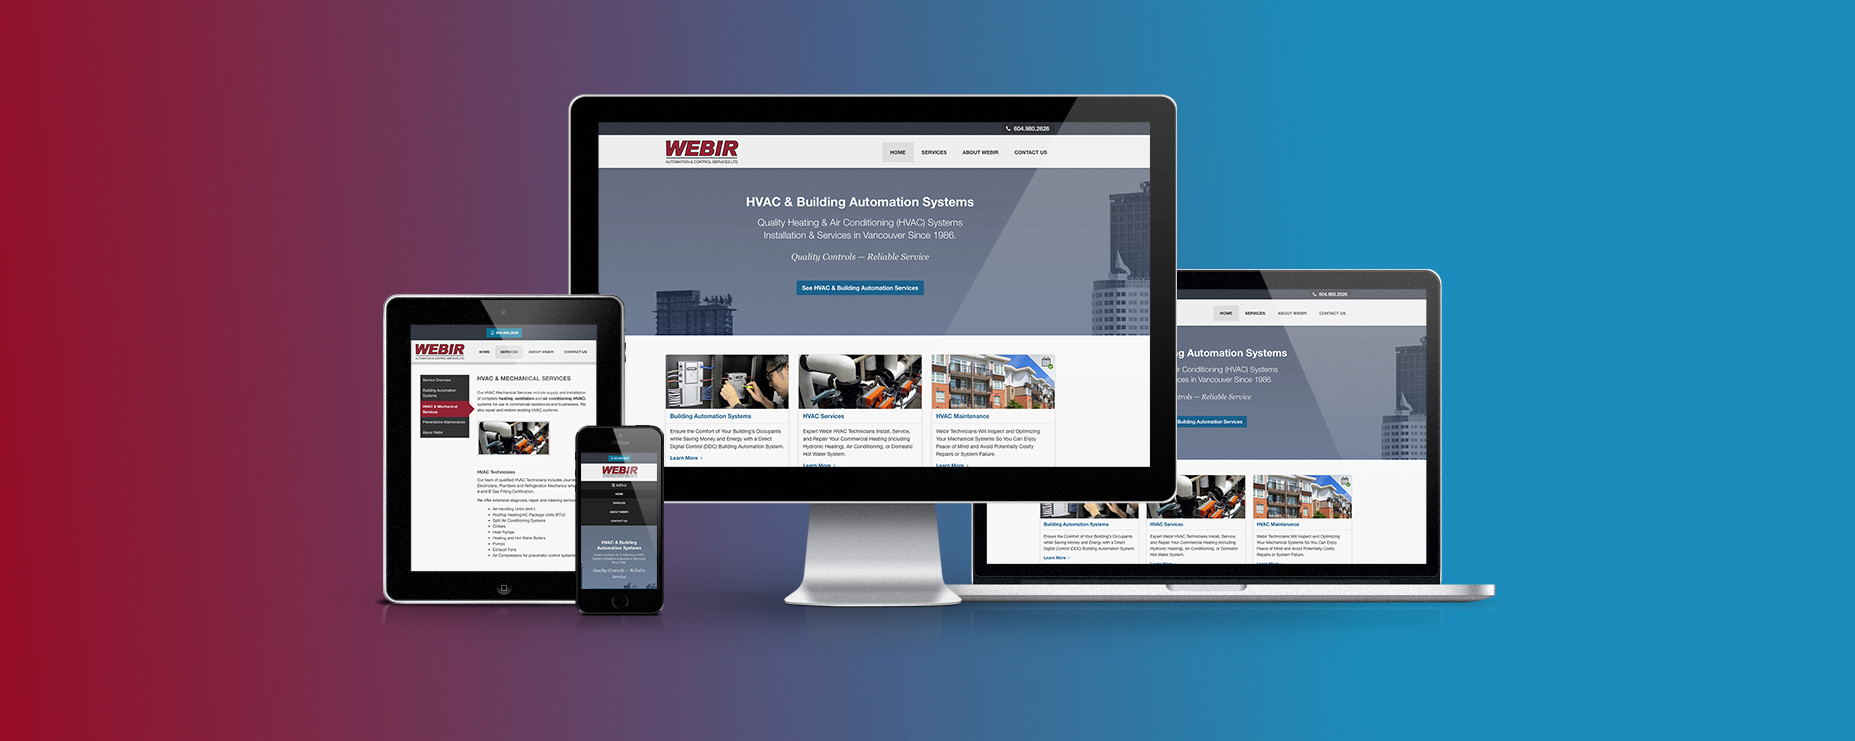 Webir Website Featured Image